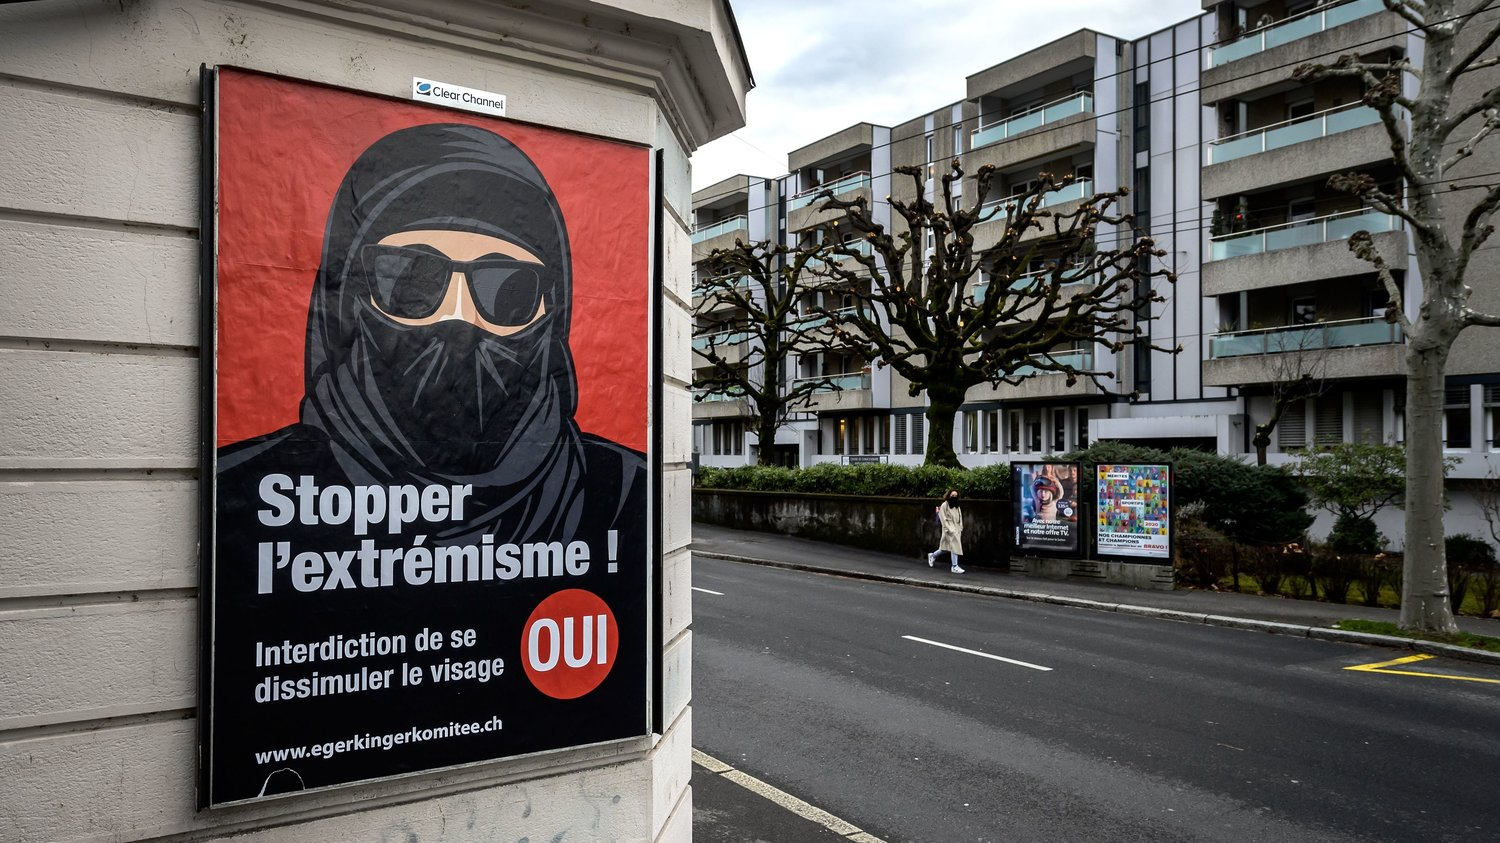 World #2 - Swiss vote to ban face coverings in public